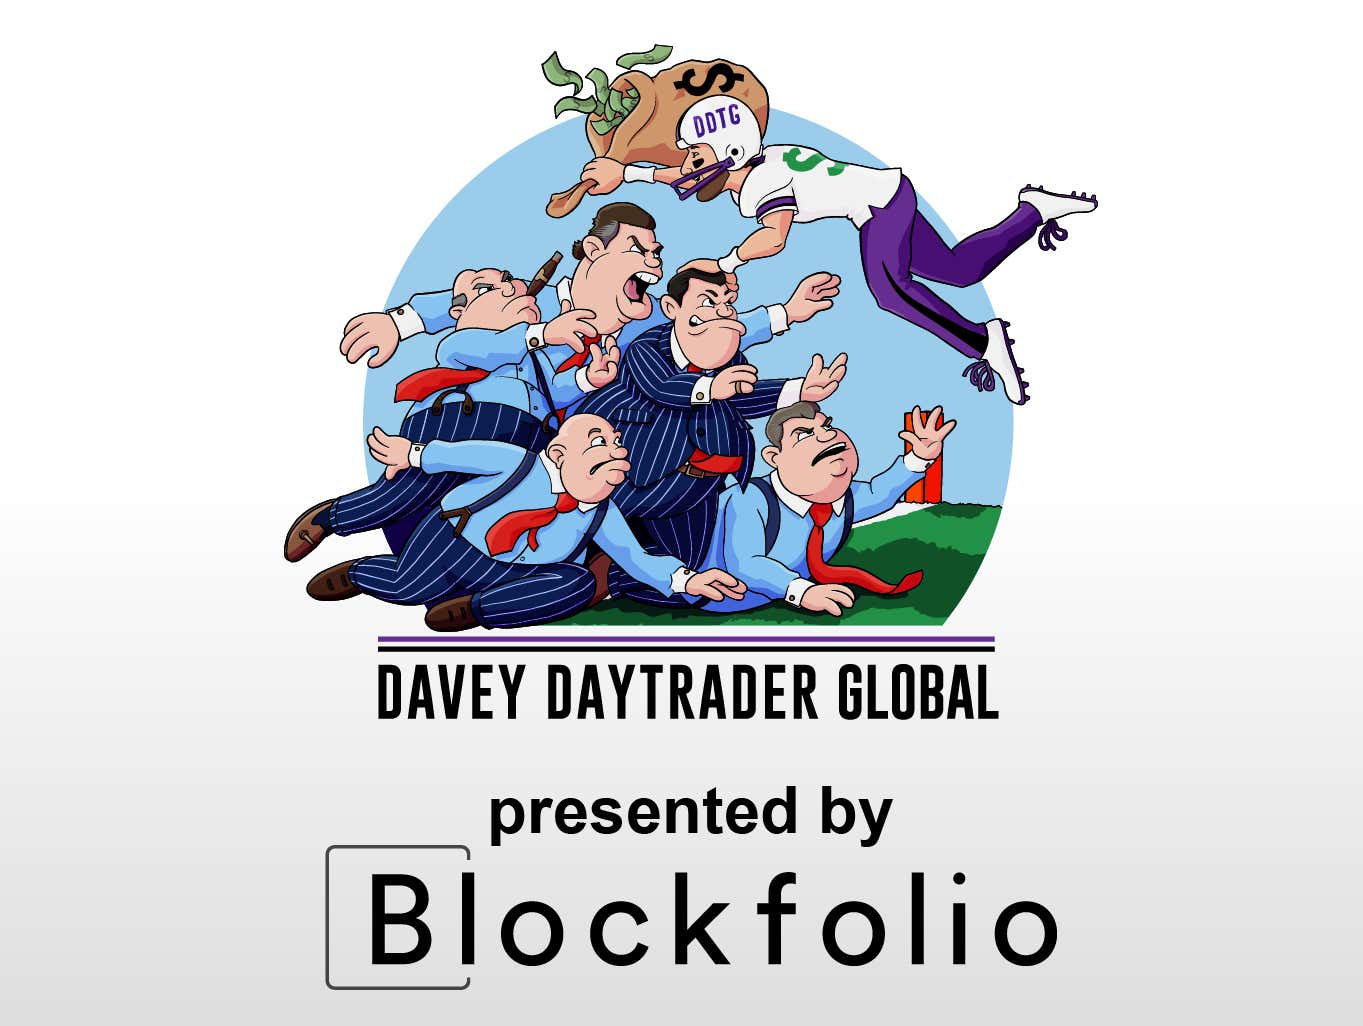 Davey Day Trader presented by Blockfolio - May 7, 2021